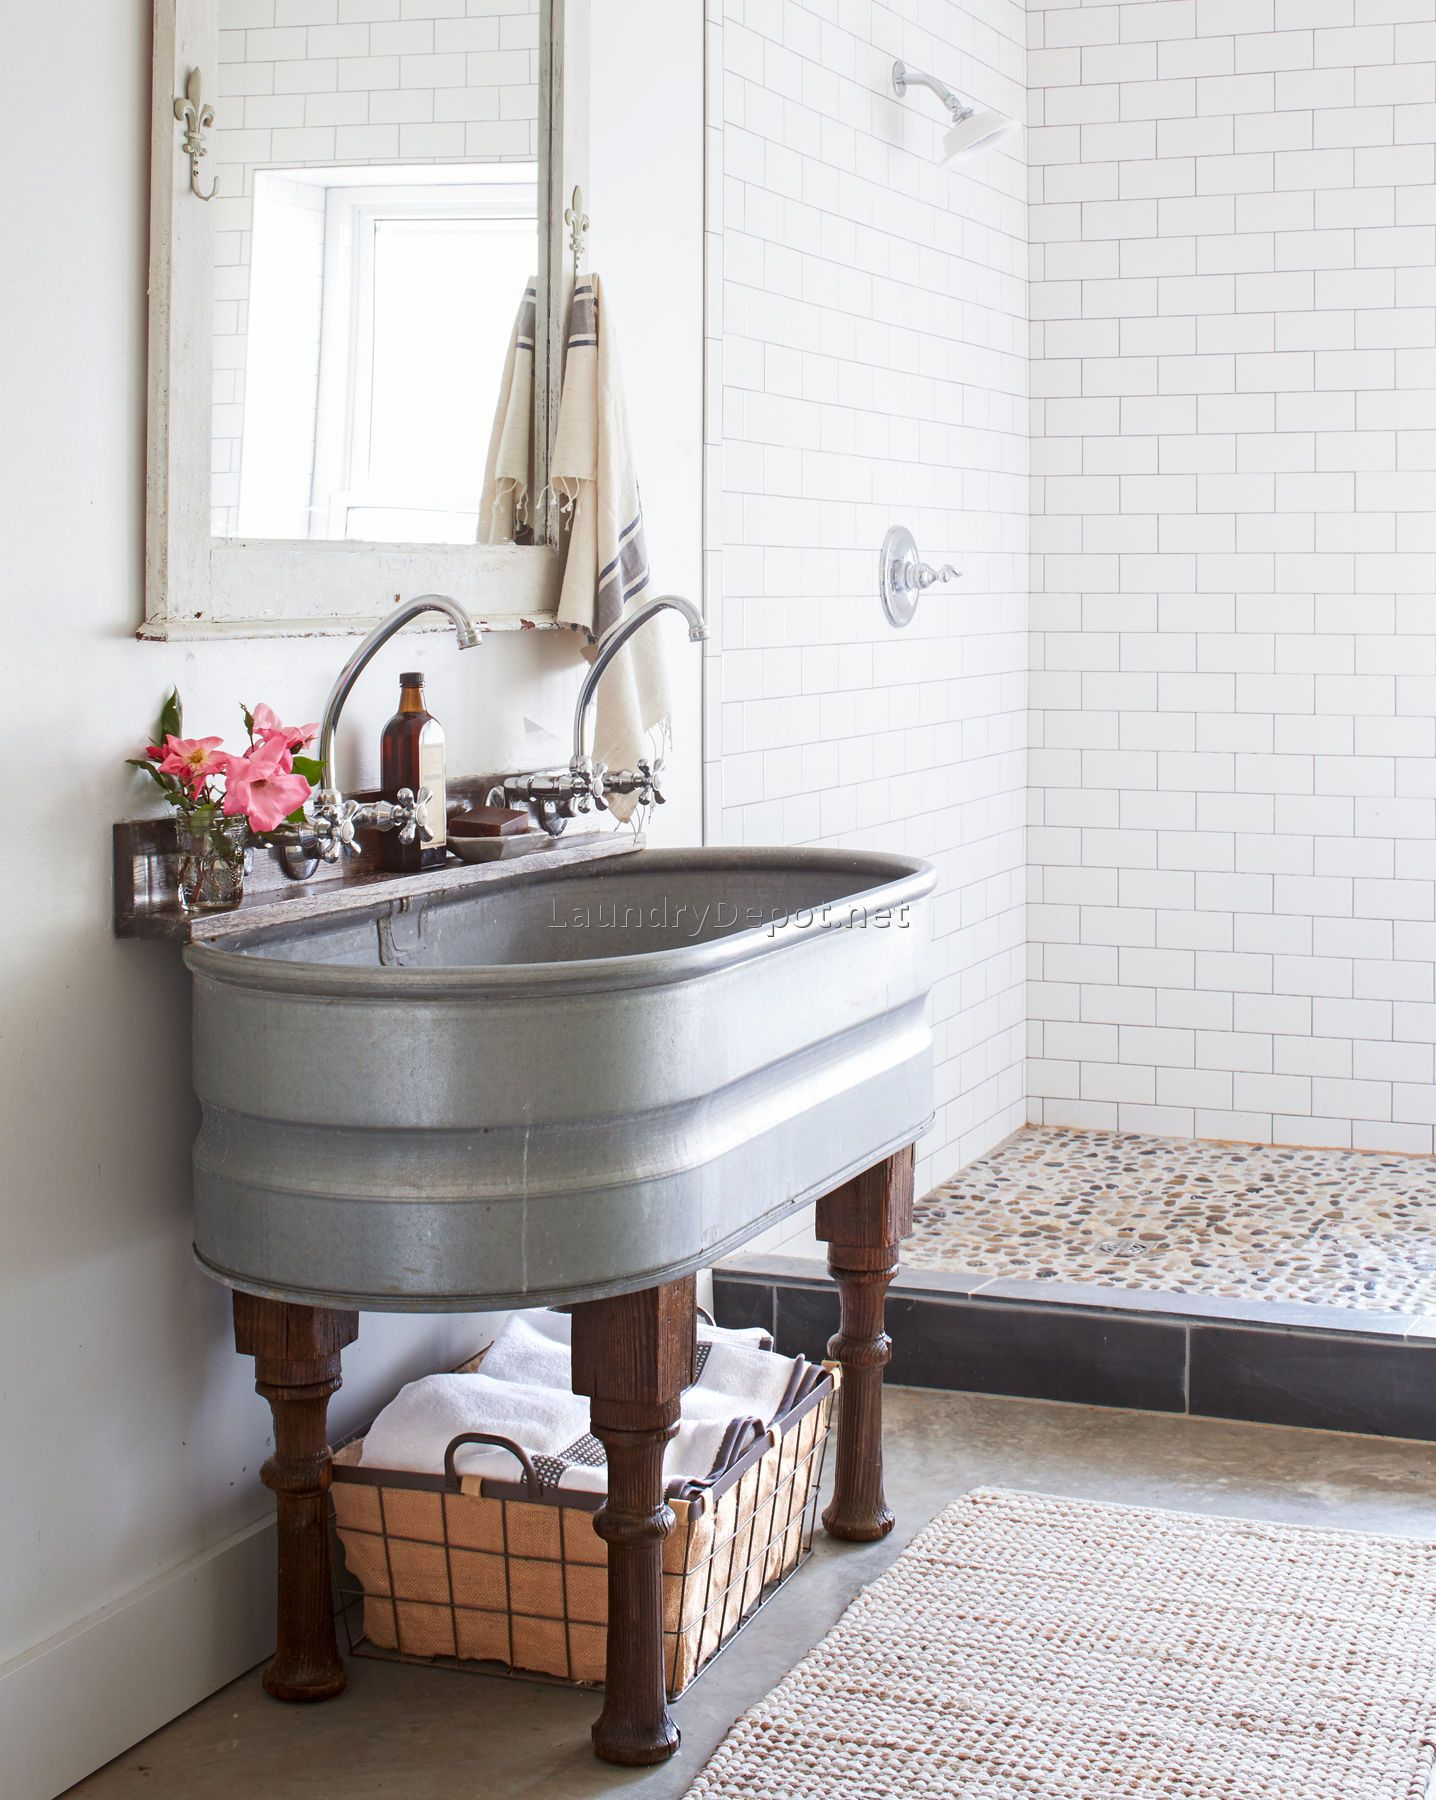 Laundry Room Wash Tub Sink Interior Design Rustic Rustic House